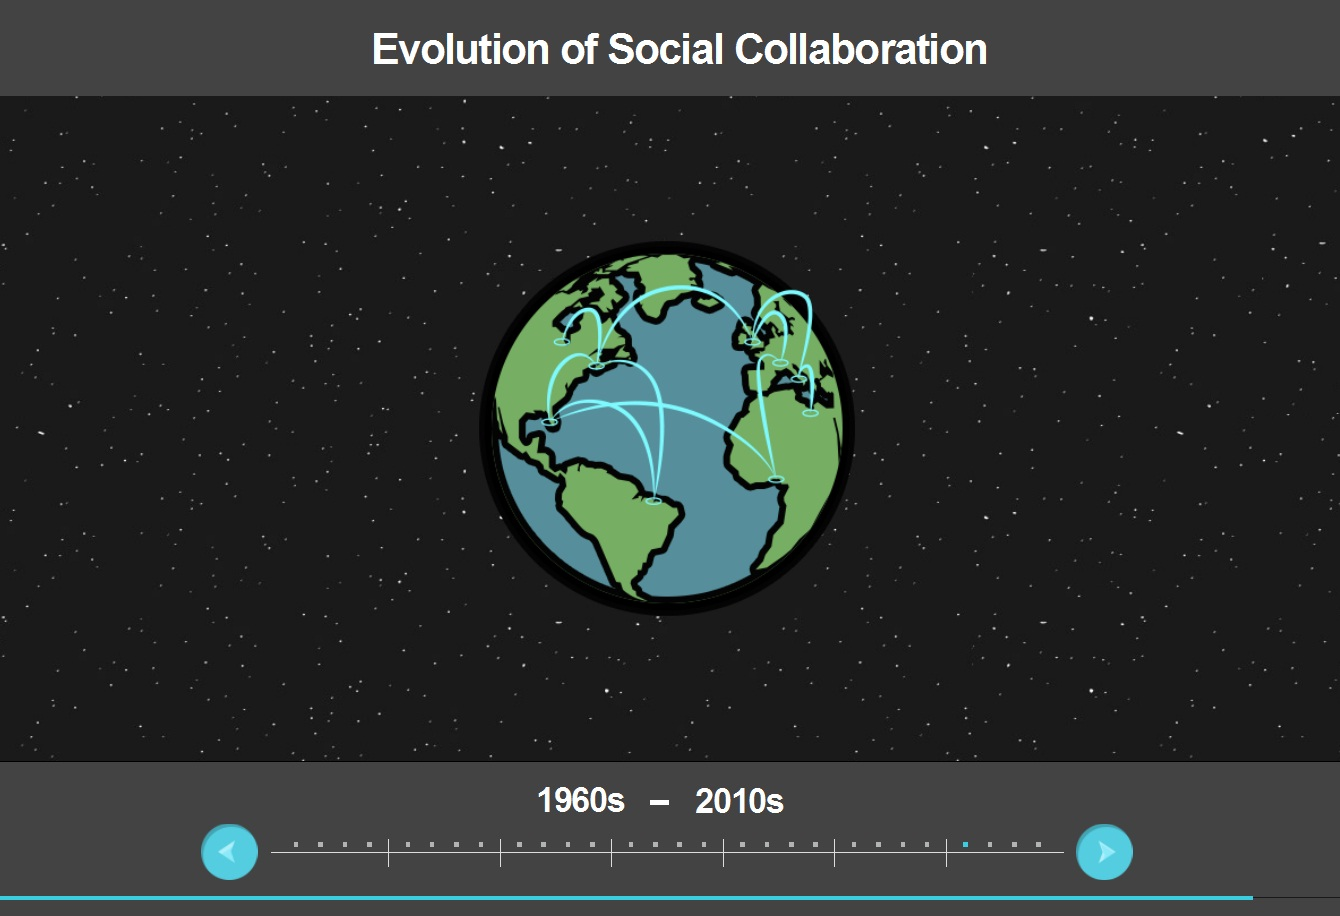 The History Of Social Collaboration - From 1960 To Present - interactive infographic